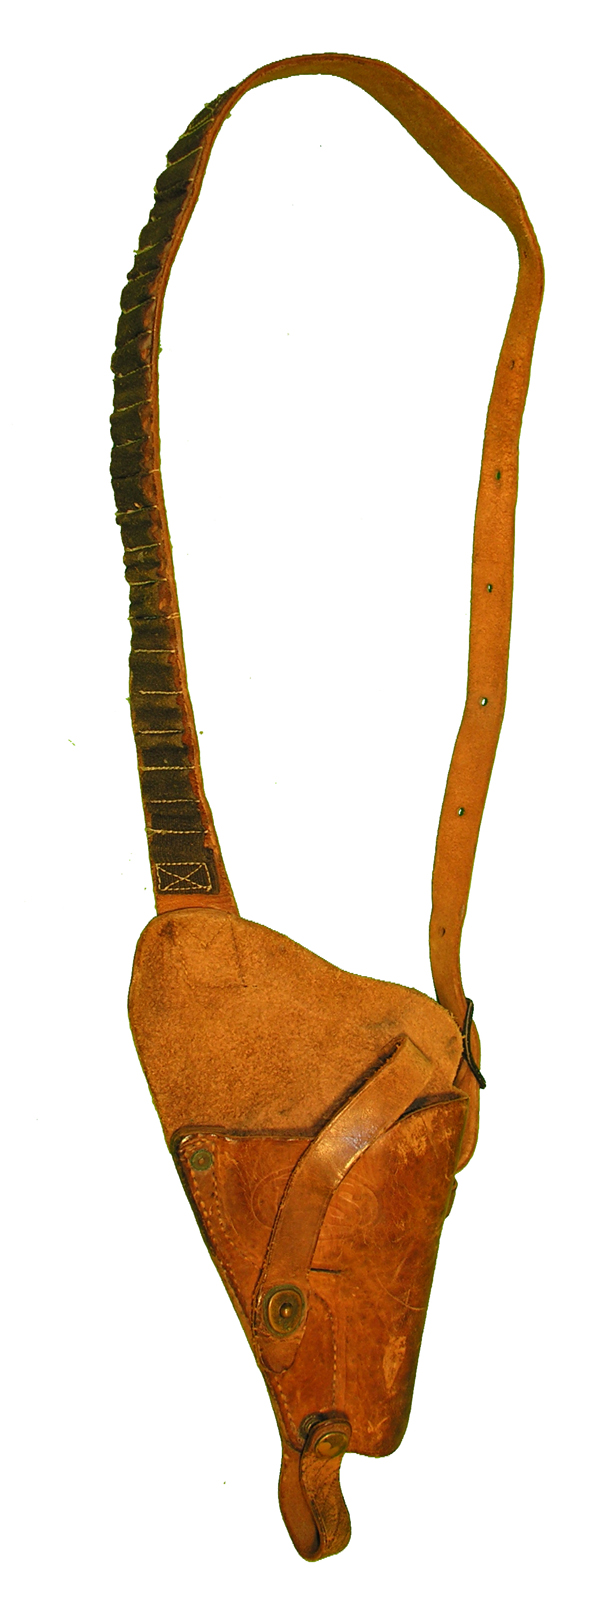 US Navy .38 Leather Shoulder Holster with Rigger Bullet Loops